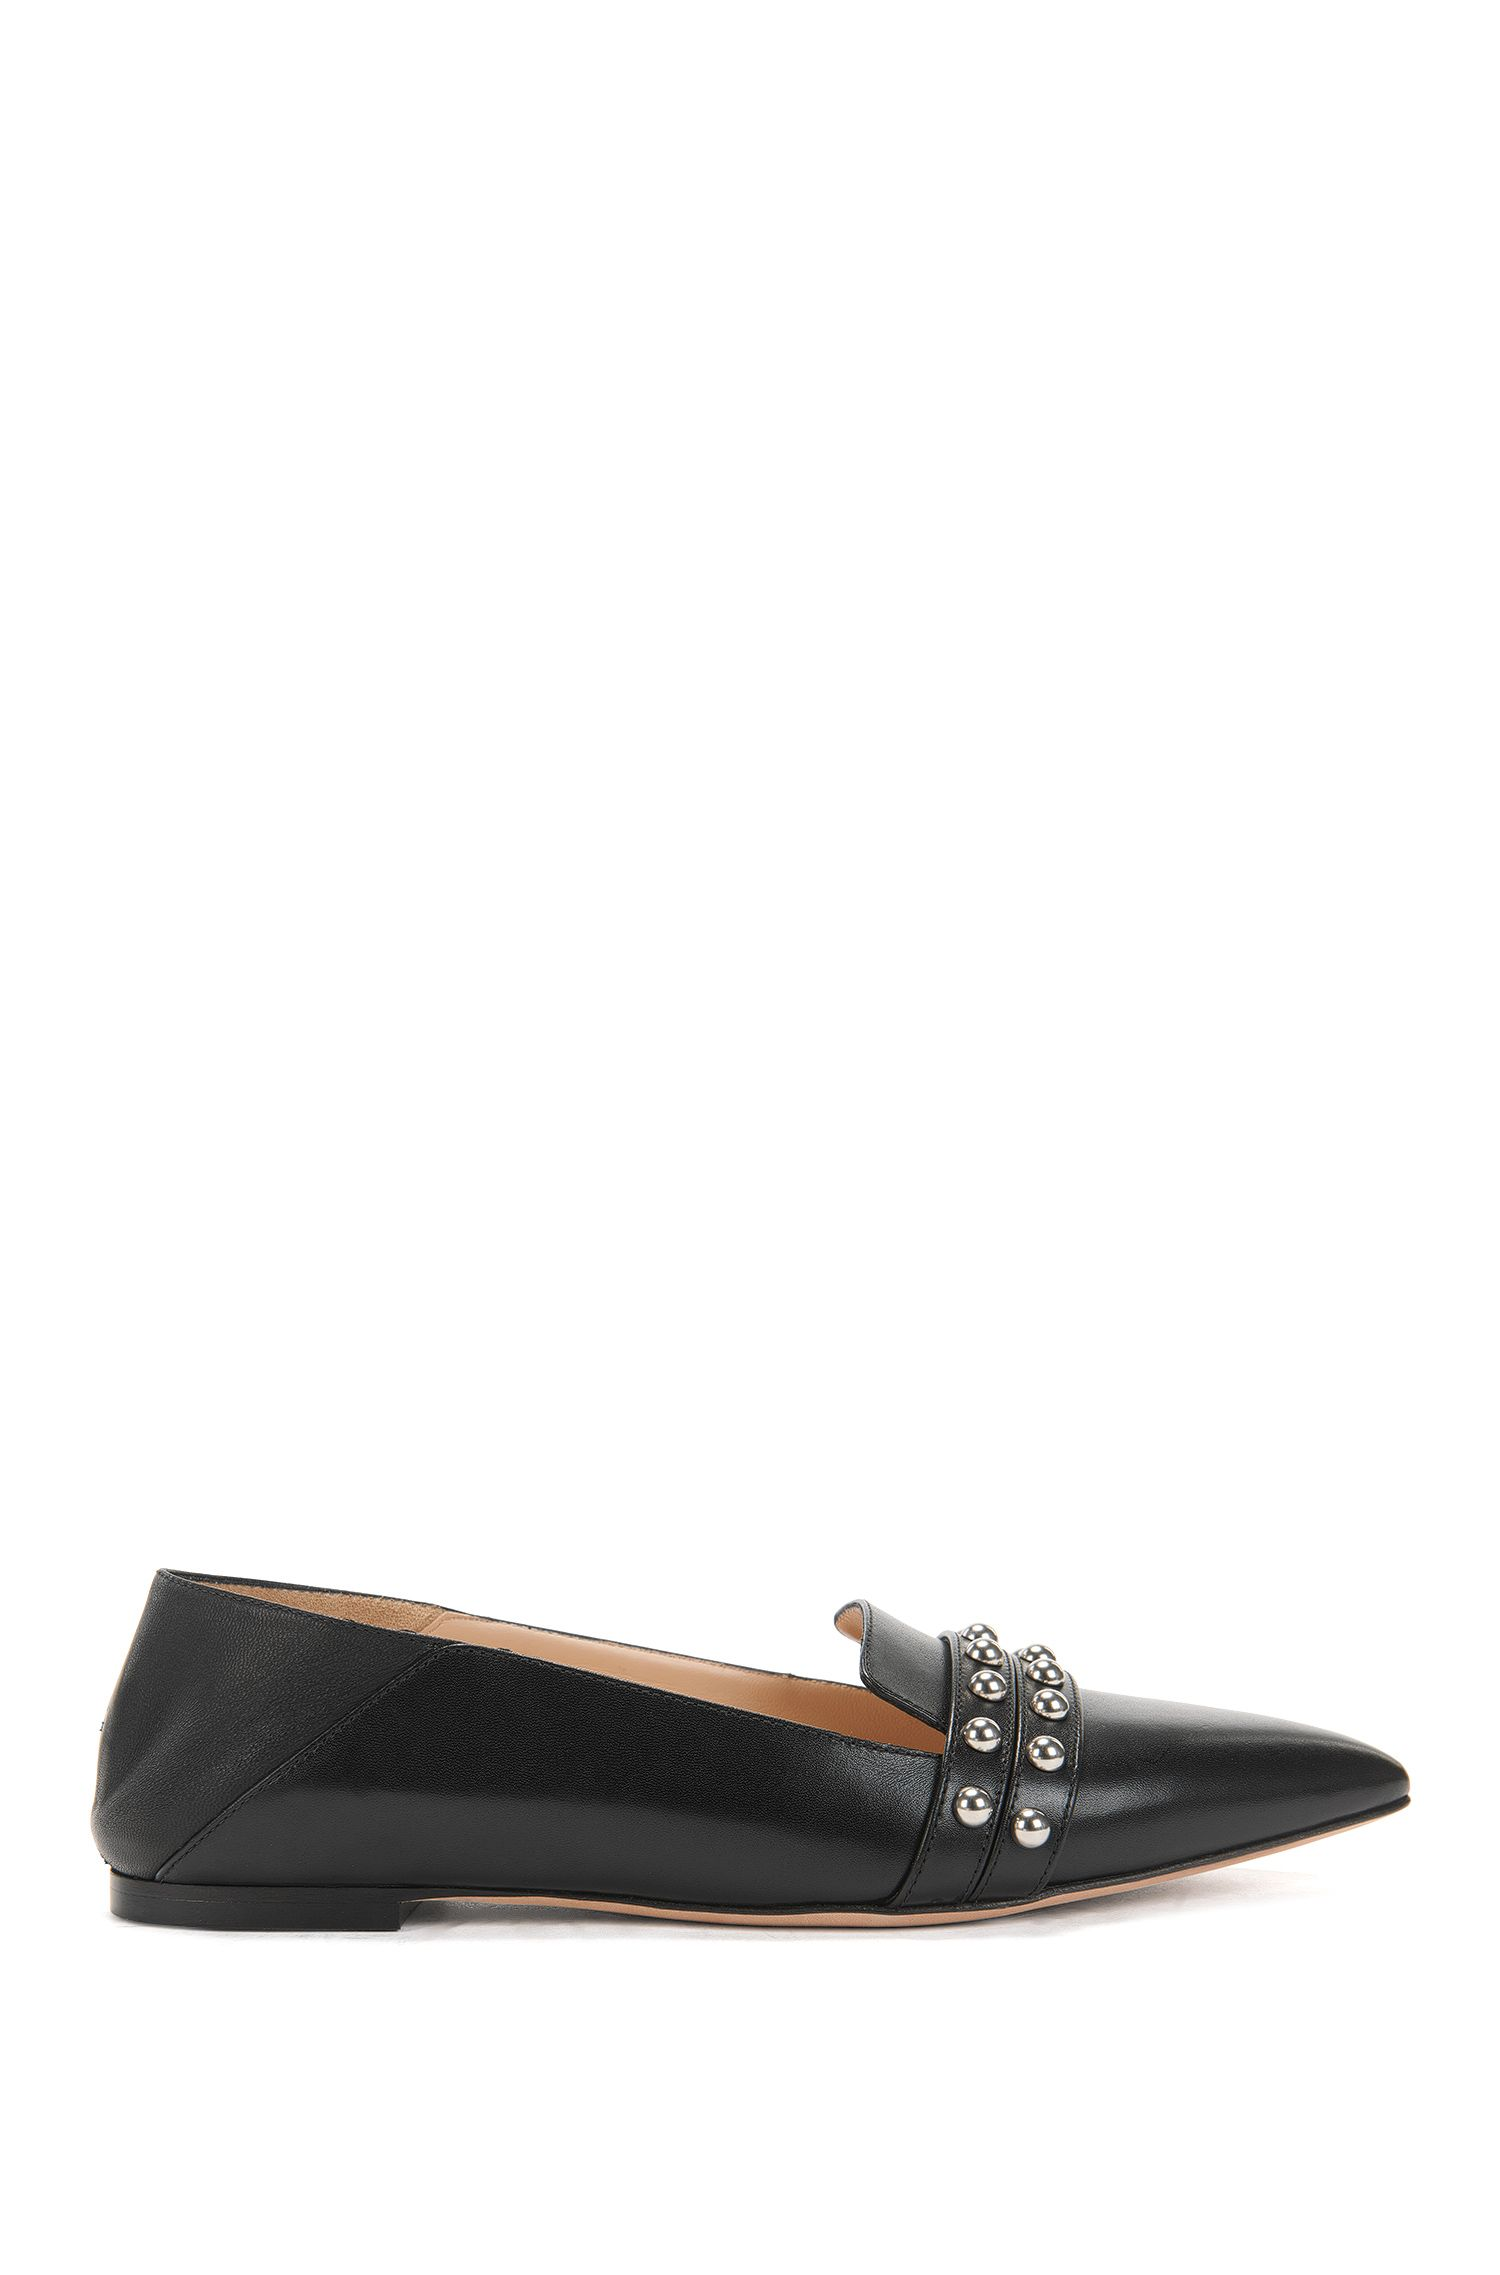 Studded Leather Ballerina Flat | Shortditch Ballerina